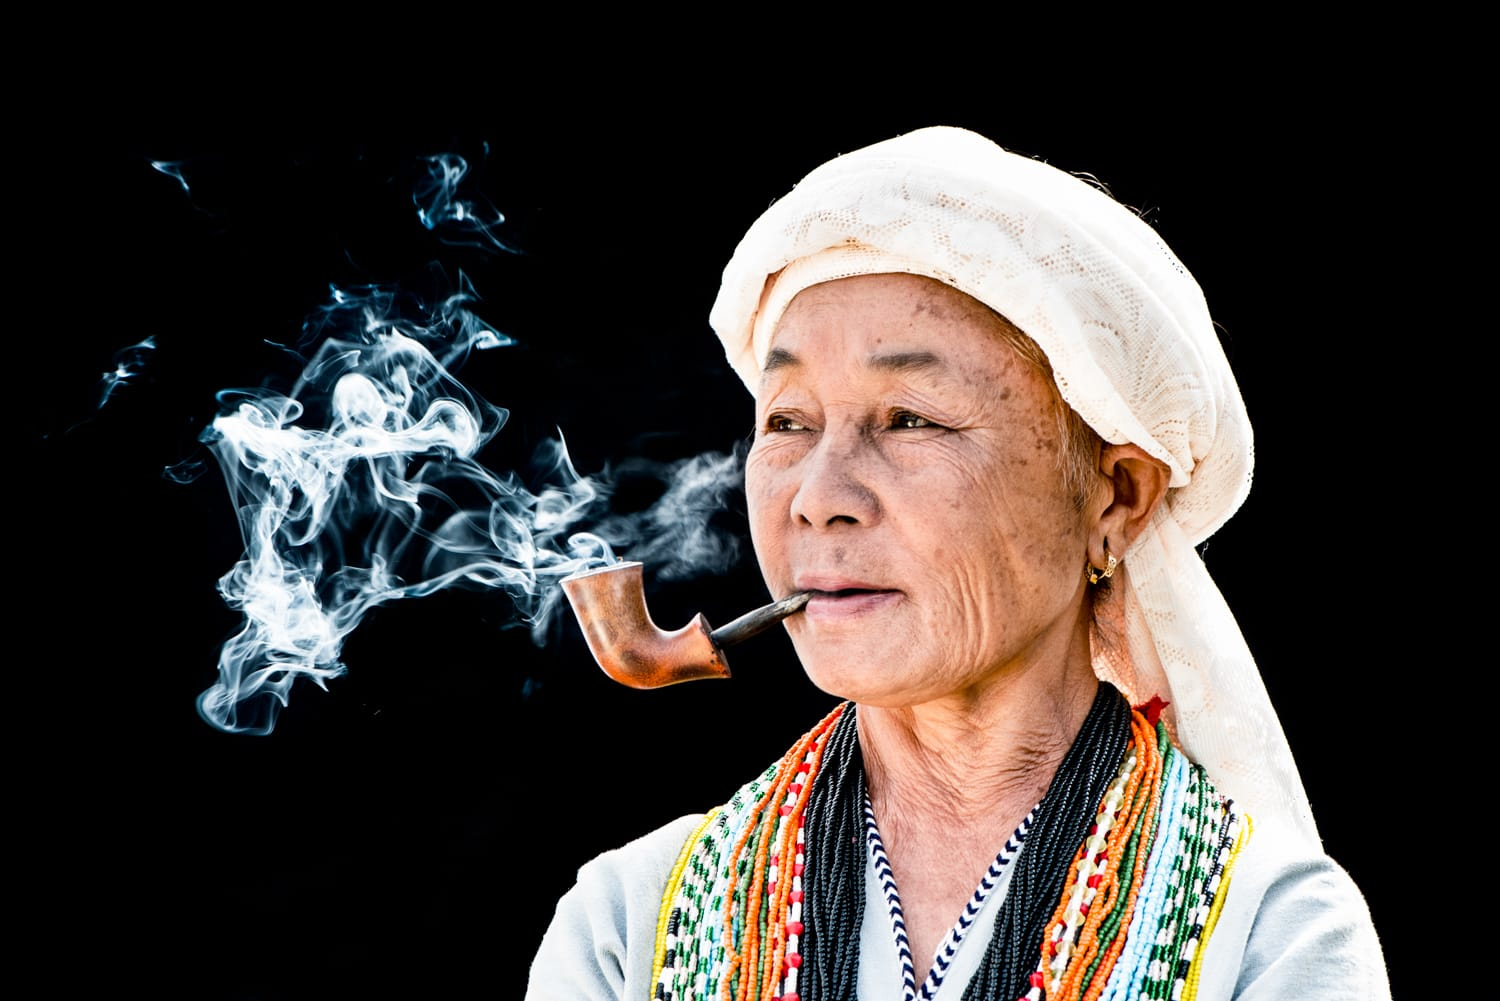 Karen woman smoking a pipe against a black background